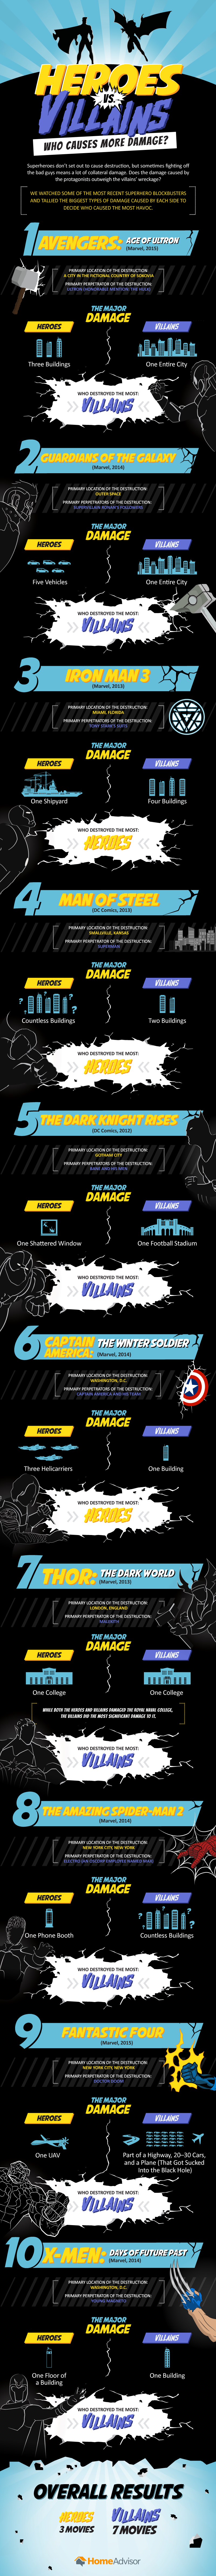 Heroes vs. Villains: Who Causes More Damage?